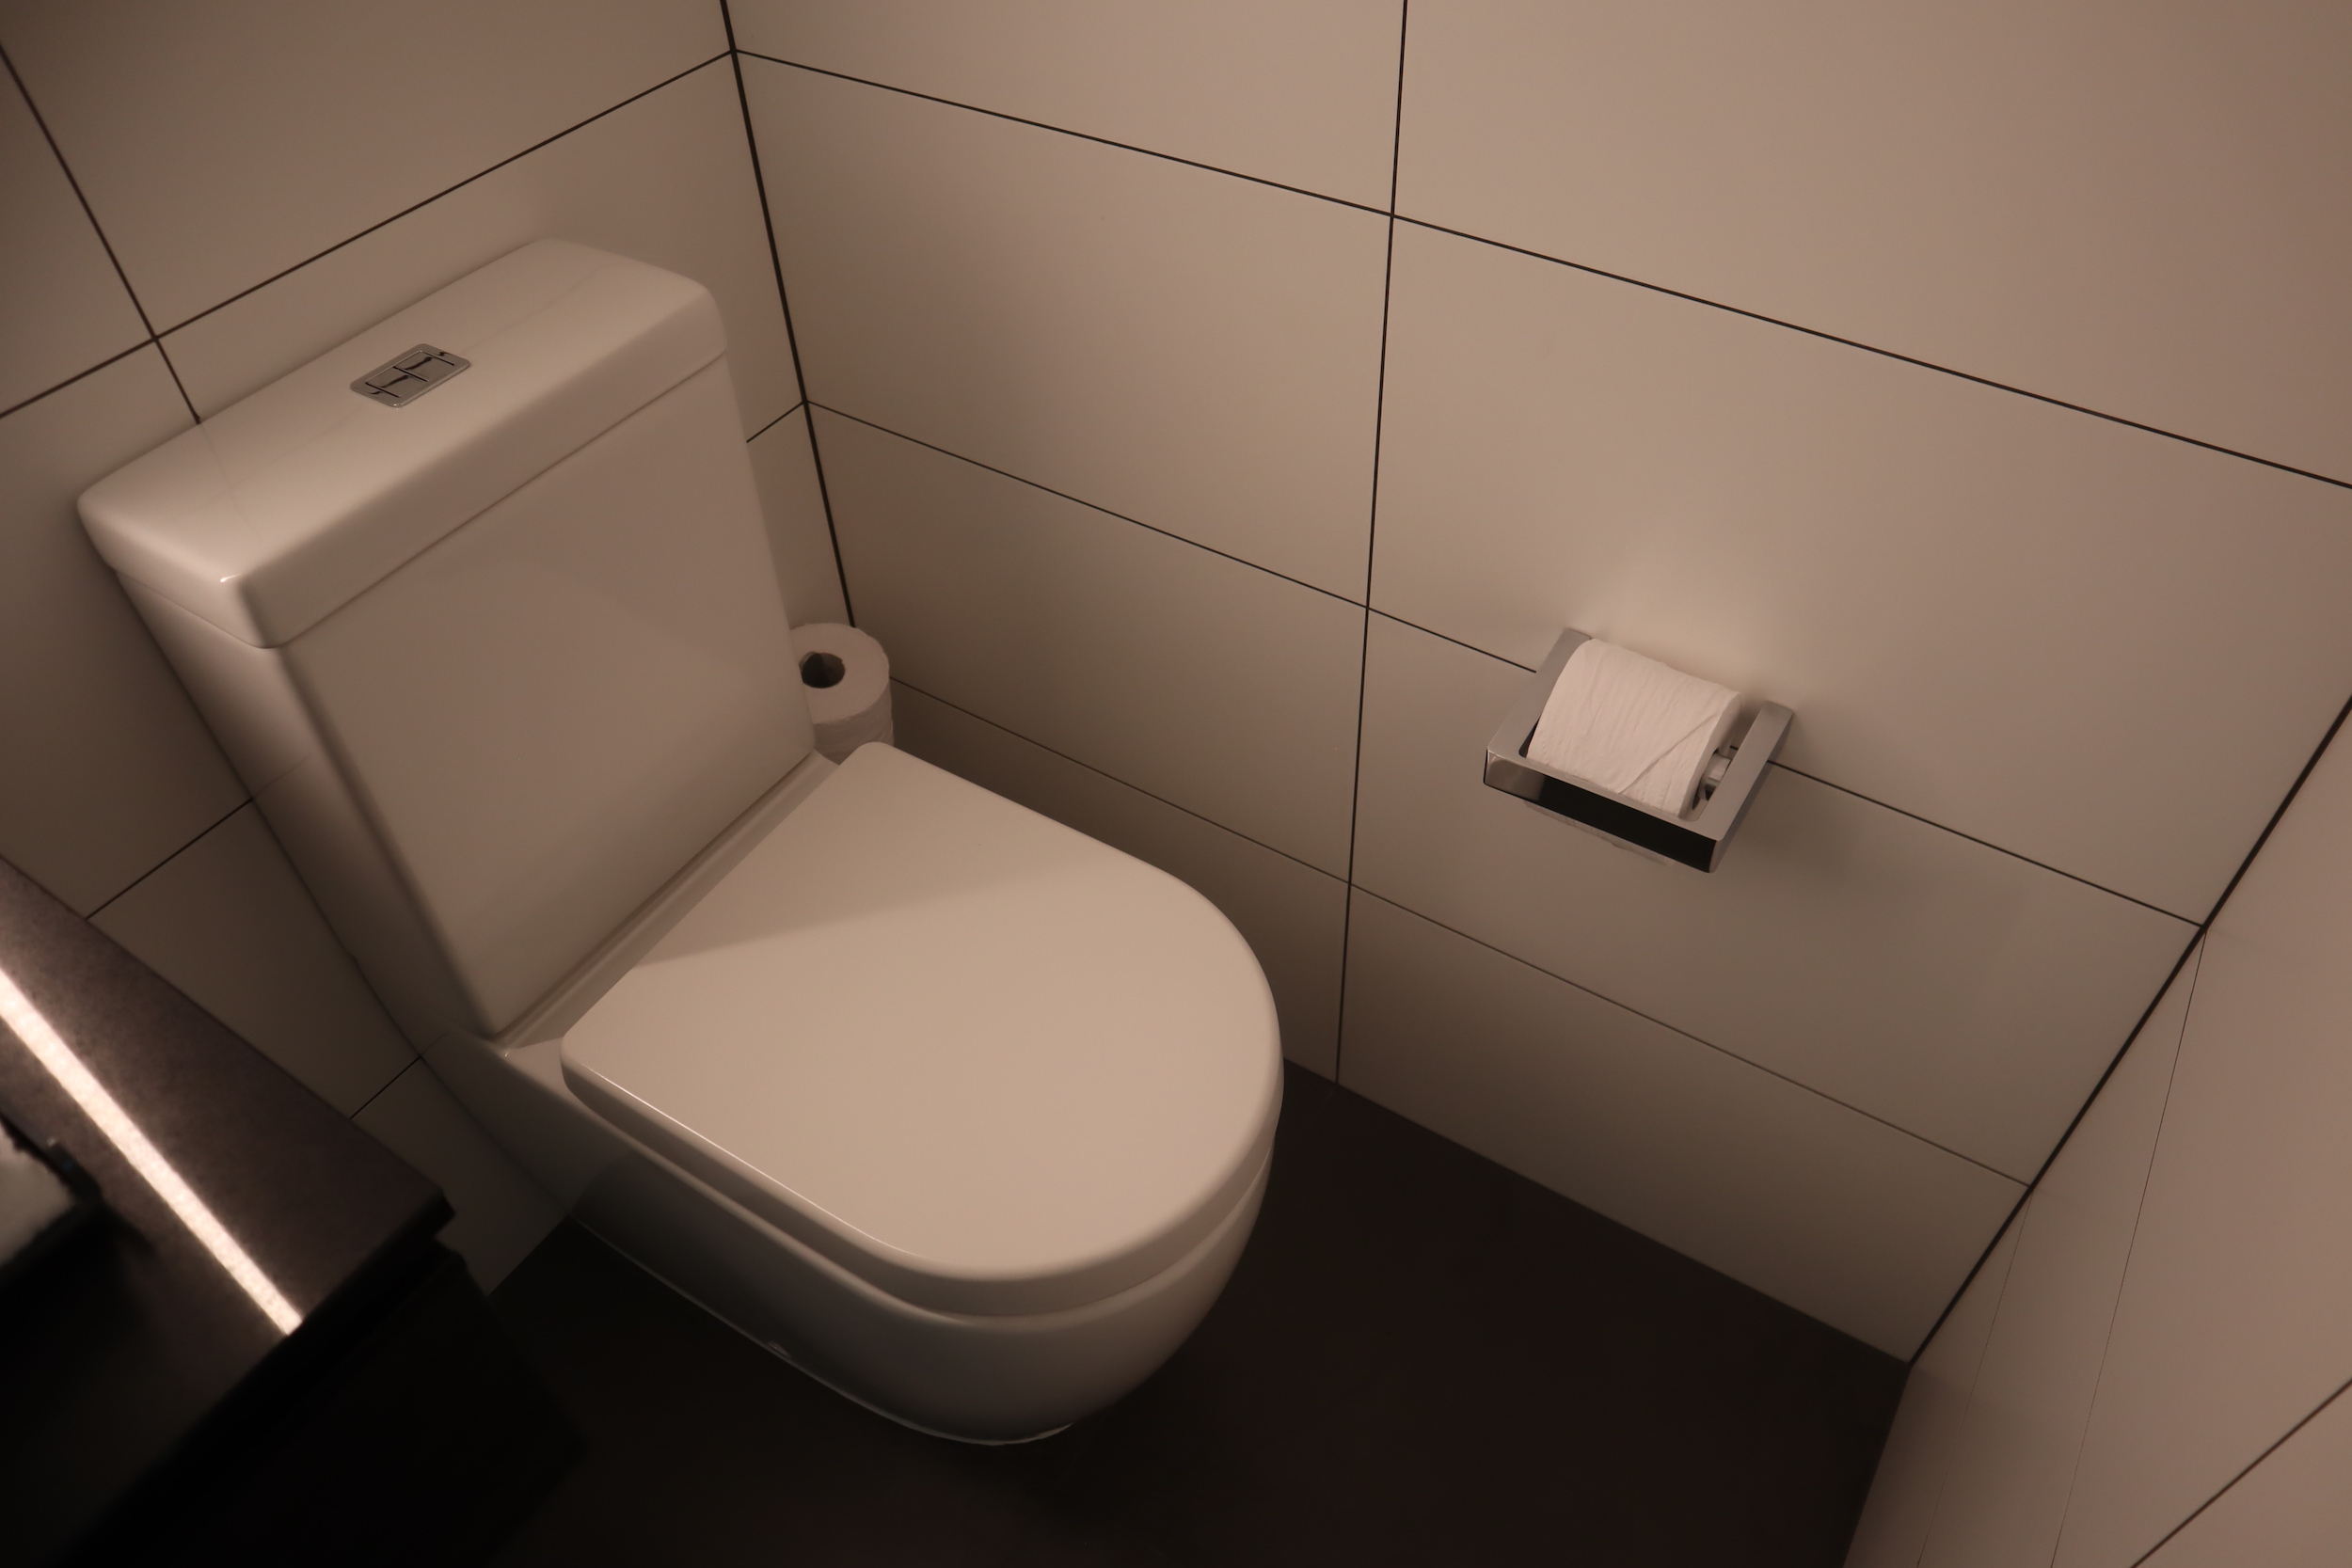 Four Points by Sheraton Auckland – Corner Room toilet